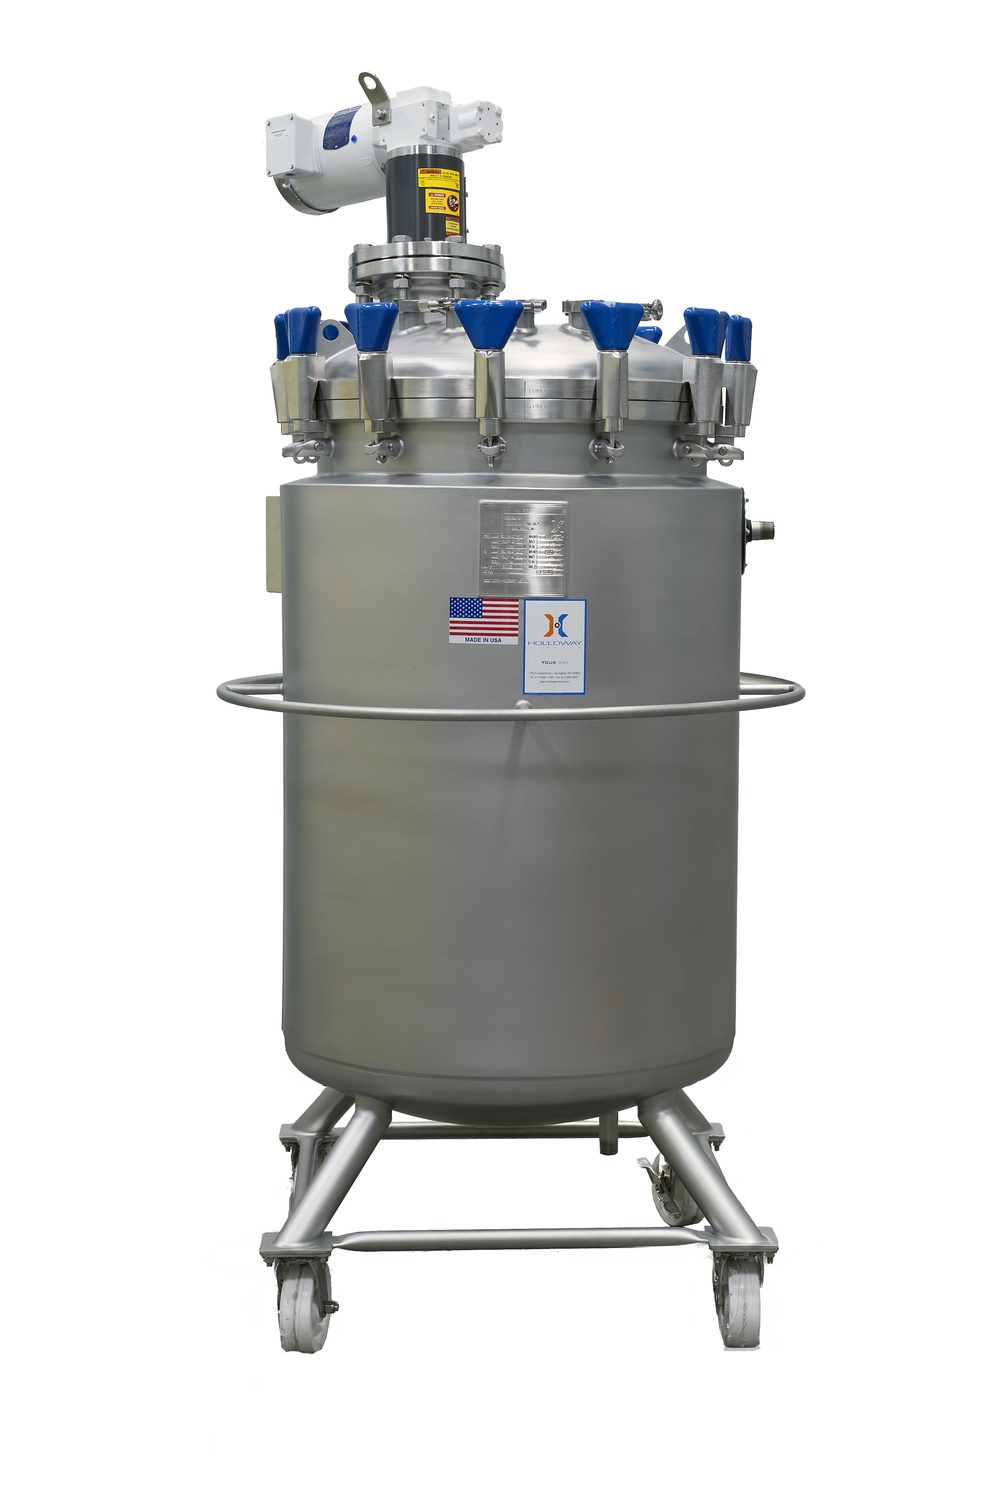 HOLLOWAY's food and dairy industry innovations include ASME-rated stainless steel mixing vessels and tanks like the one shown here.